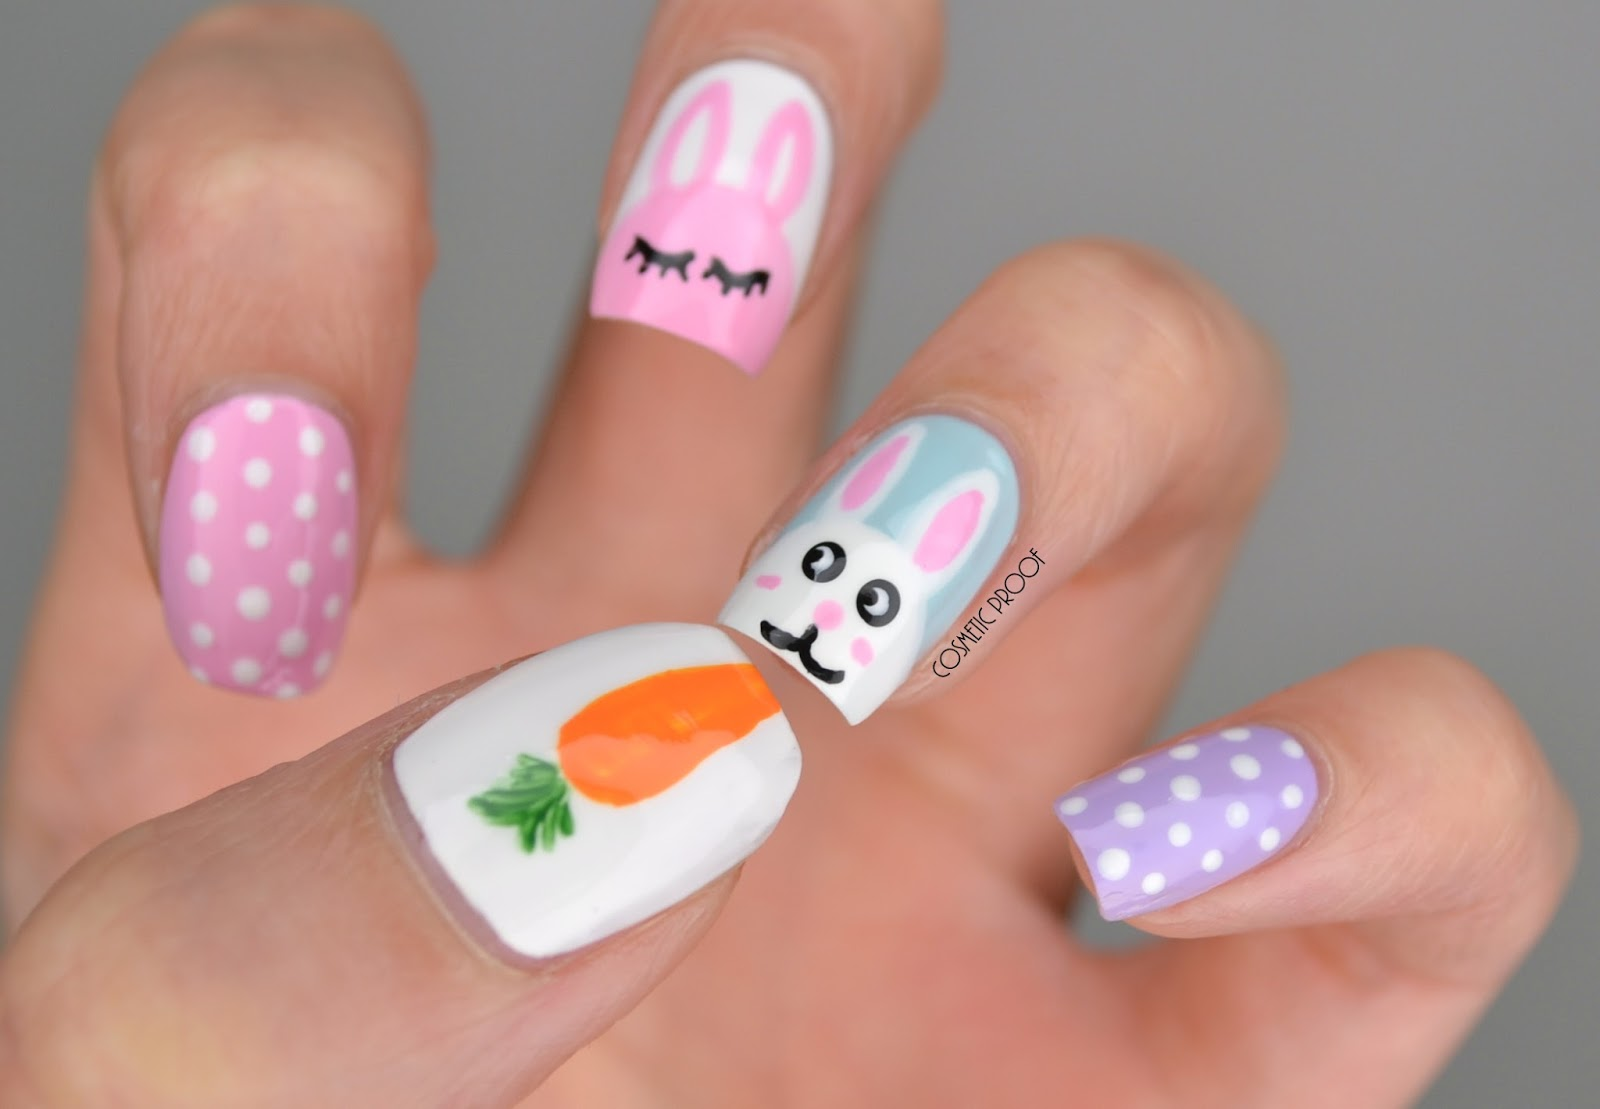 NAILS | What Does a Bunny Like to Eat? #ManiMonday | Cosmetic Proof ...